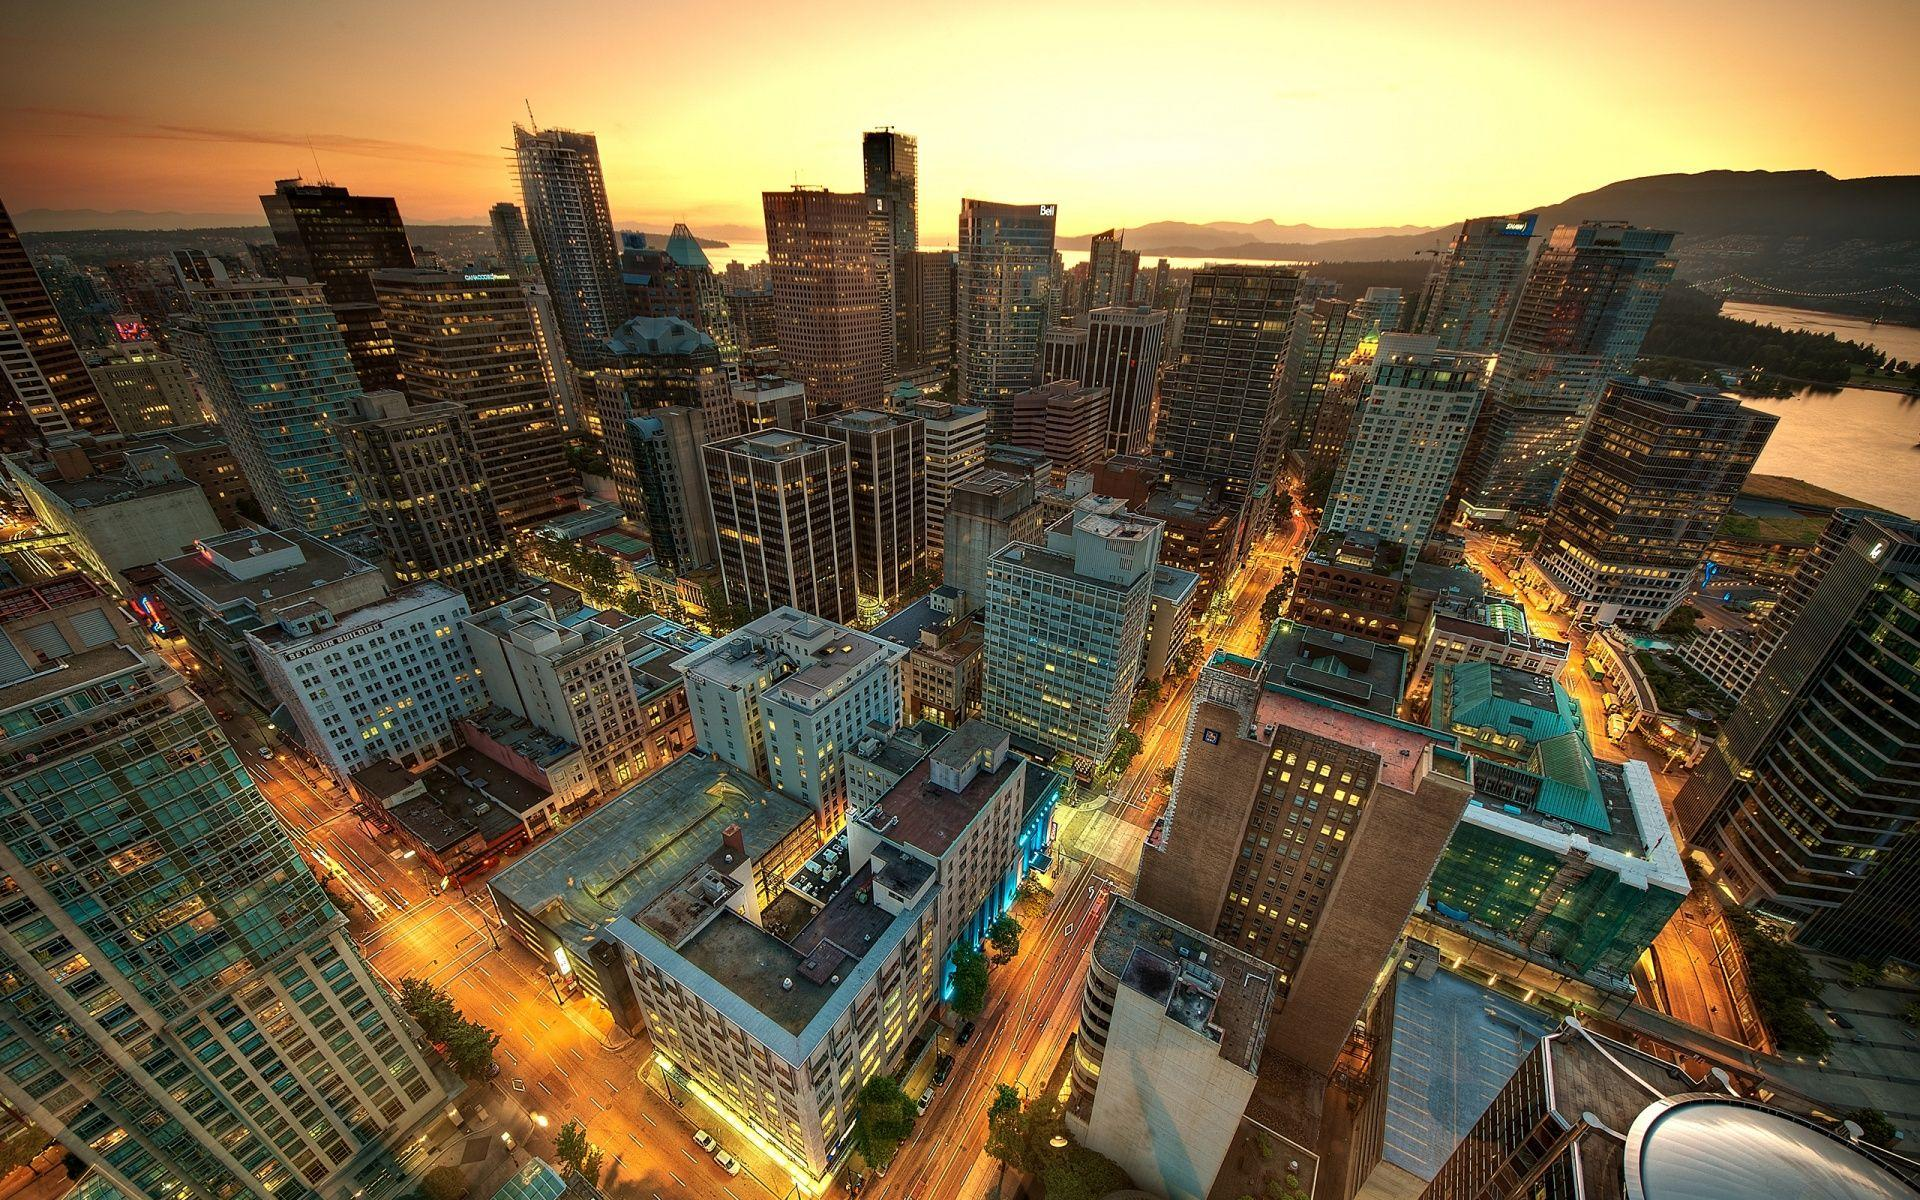 Vancouver Sunset Canada Wallpapers in jpg format for free download